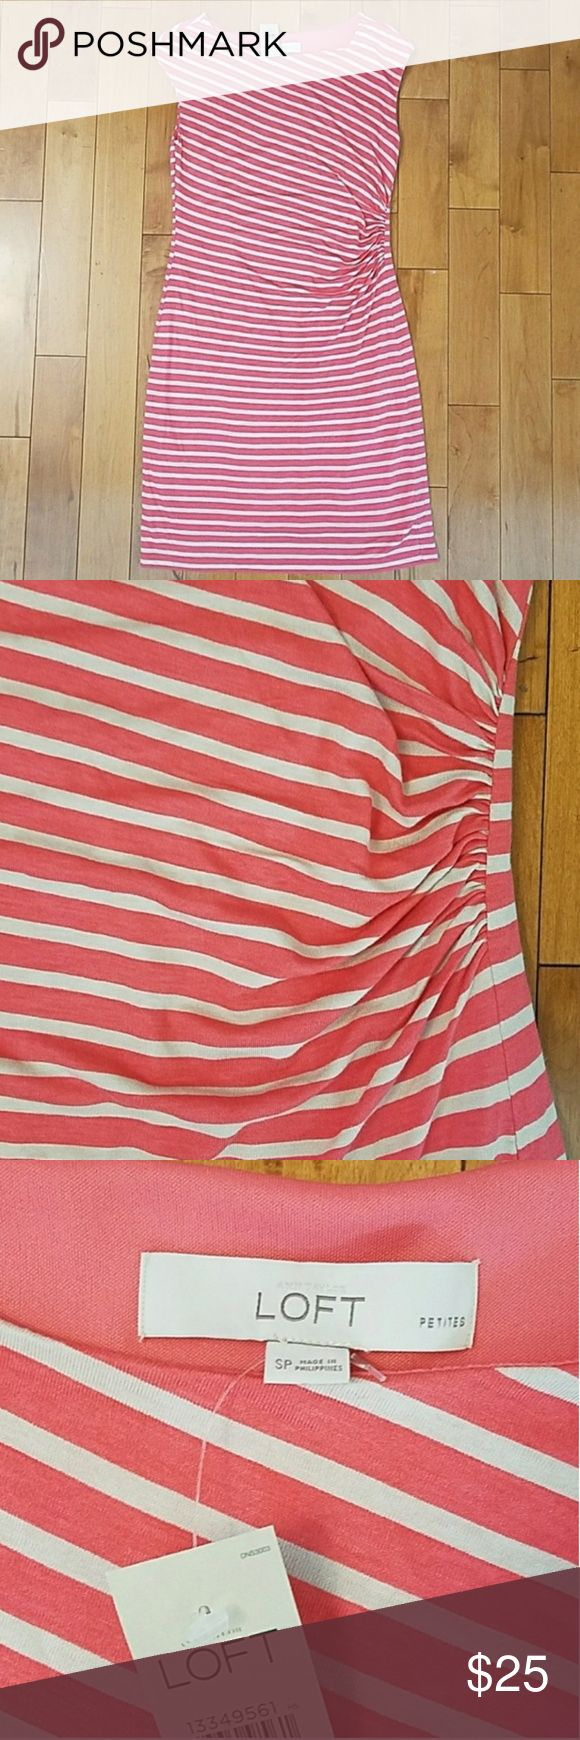 "NWT Ann Taylor LOFT Petite Dress NWT Ann Taylor LOFT Petite Coral Pink and Cream Striped Dress with side ruching. Size small petite. Lined. 70% rayon, 30% tencel lyocell. 15.75"" across the bust. 35.5"" long. LOFT Dresses"